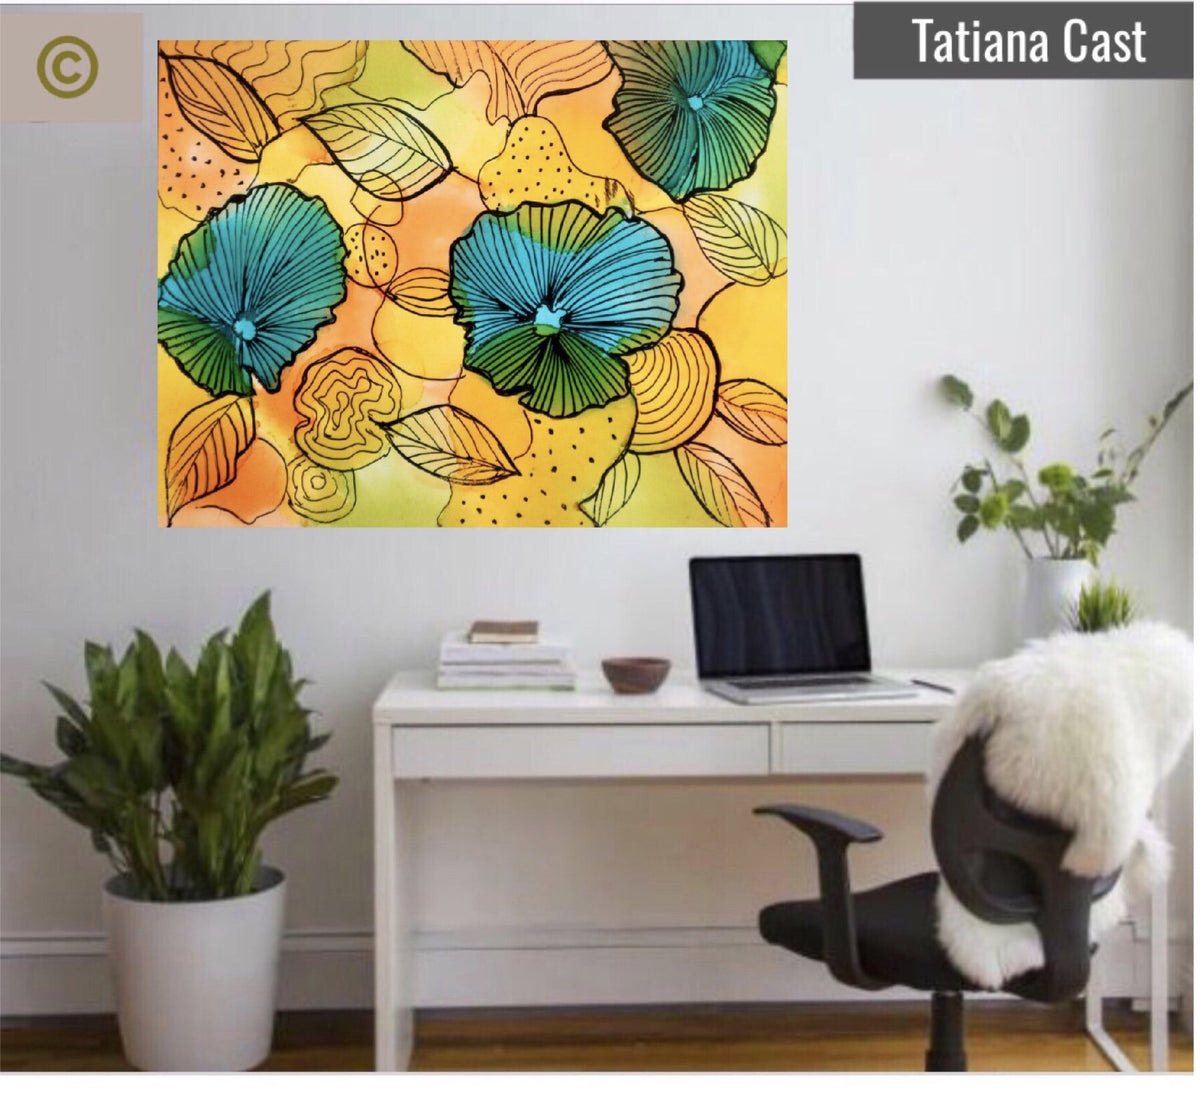 Nature's Graphic 3 -Limited Edition - TatianaCast